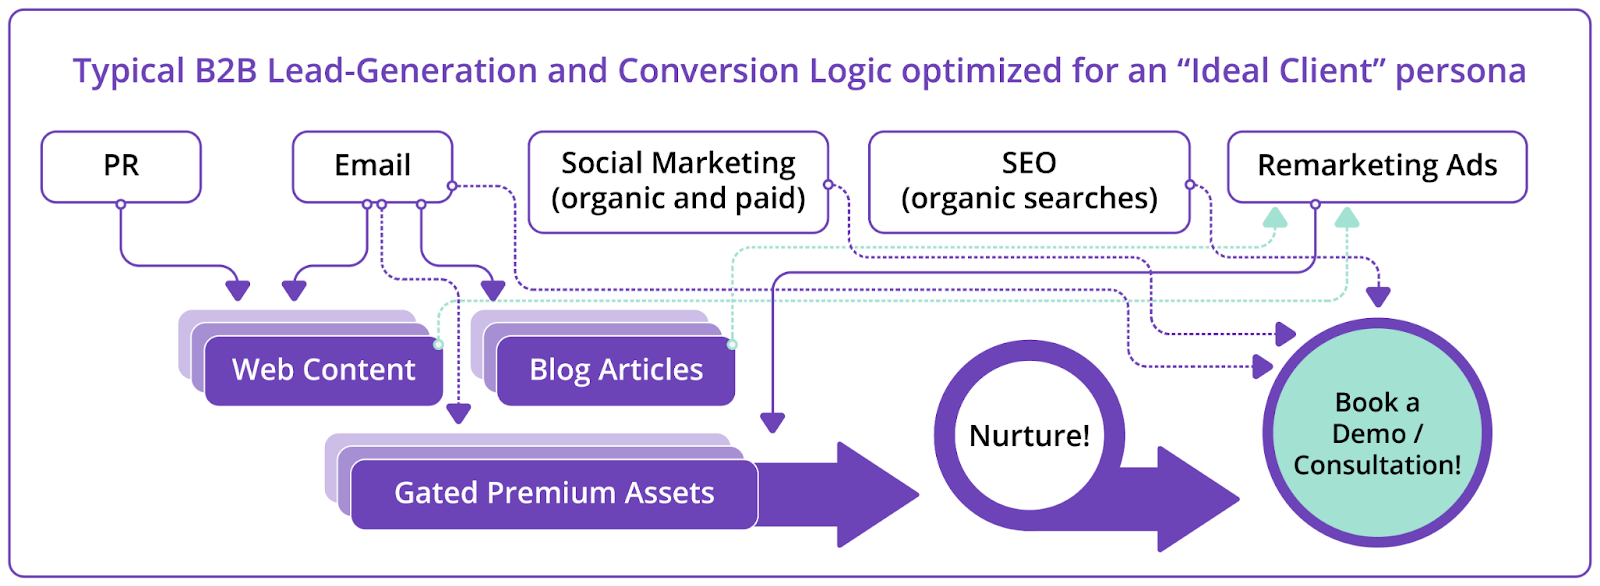 typical b2b lead-generation and conversion logic optimised for an ideal client persona